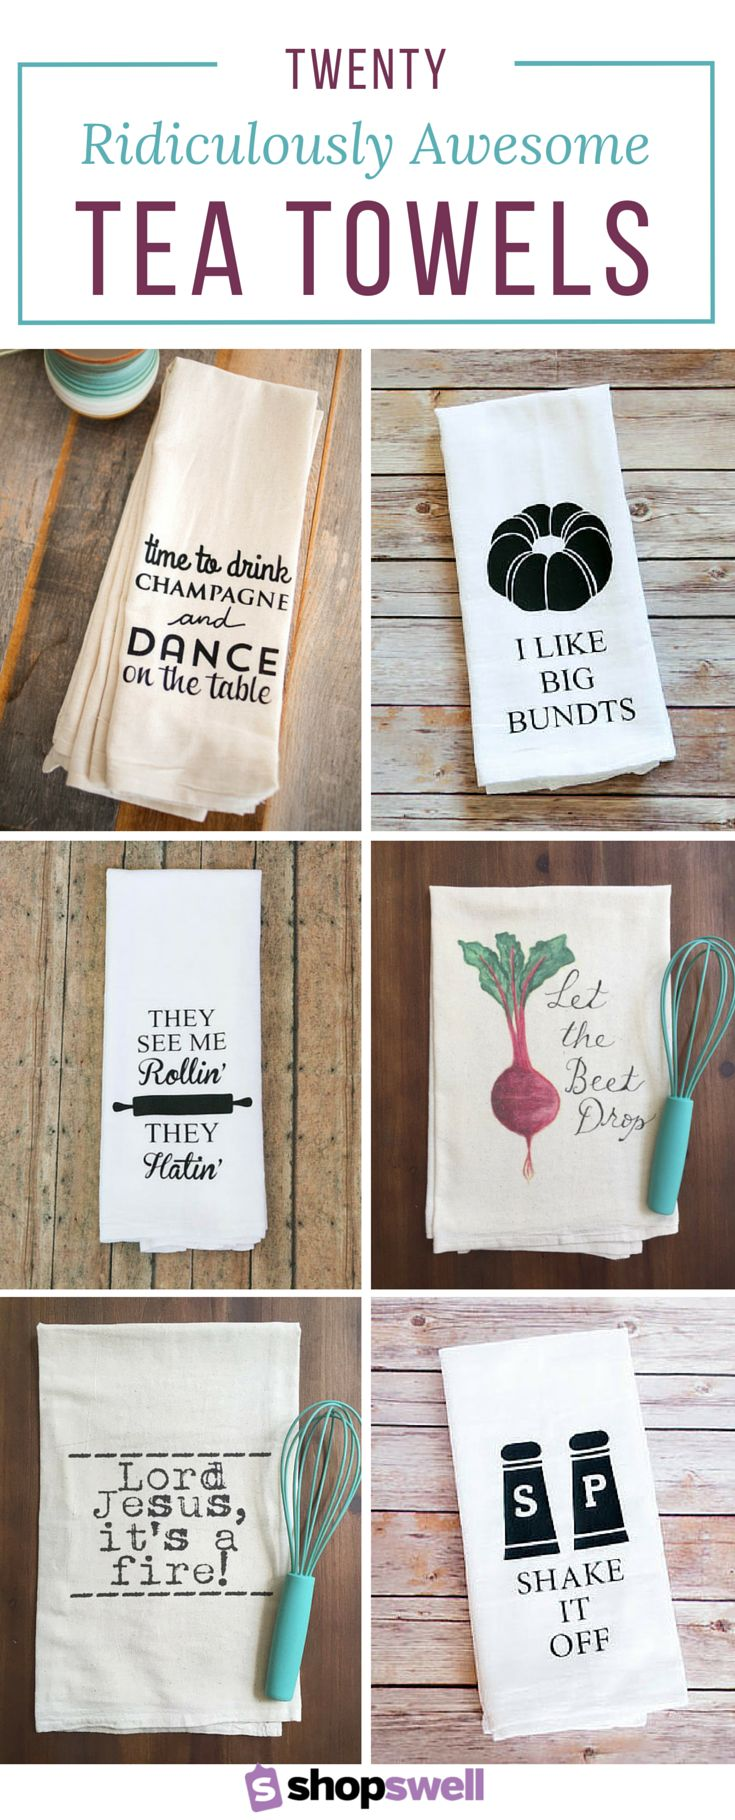 Kitchen towel hanging ideas - 20 Ridiculously Awesome Tea Towels